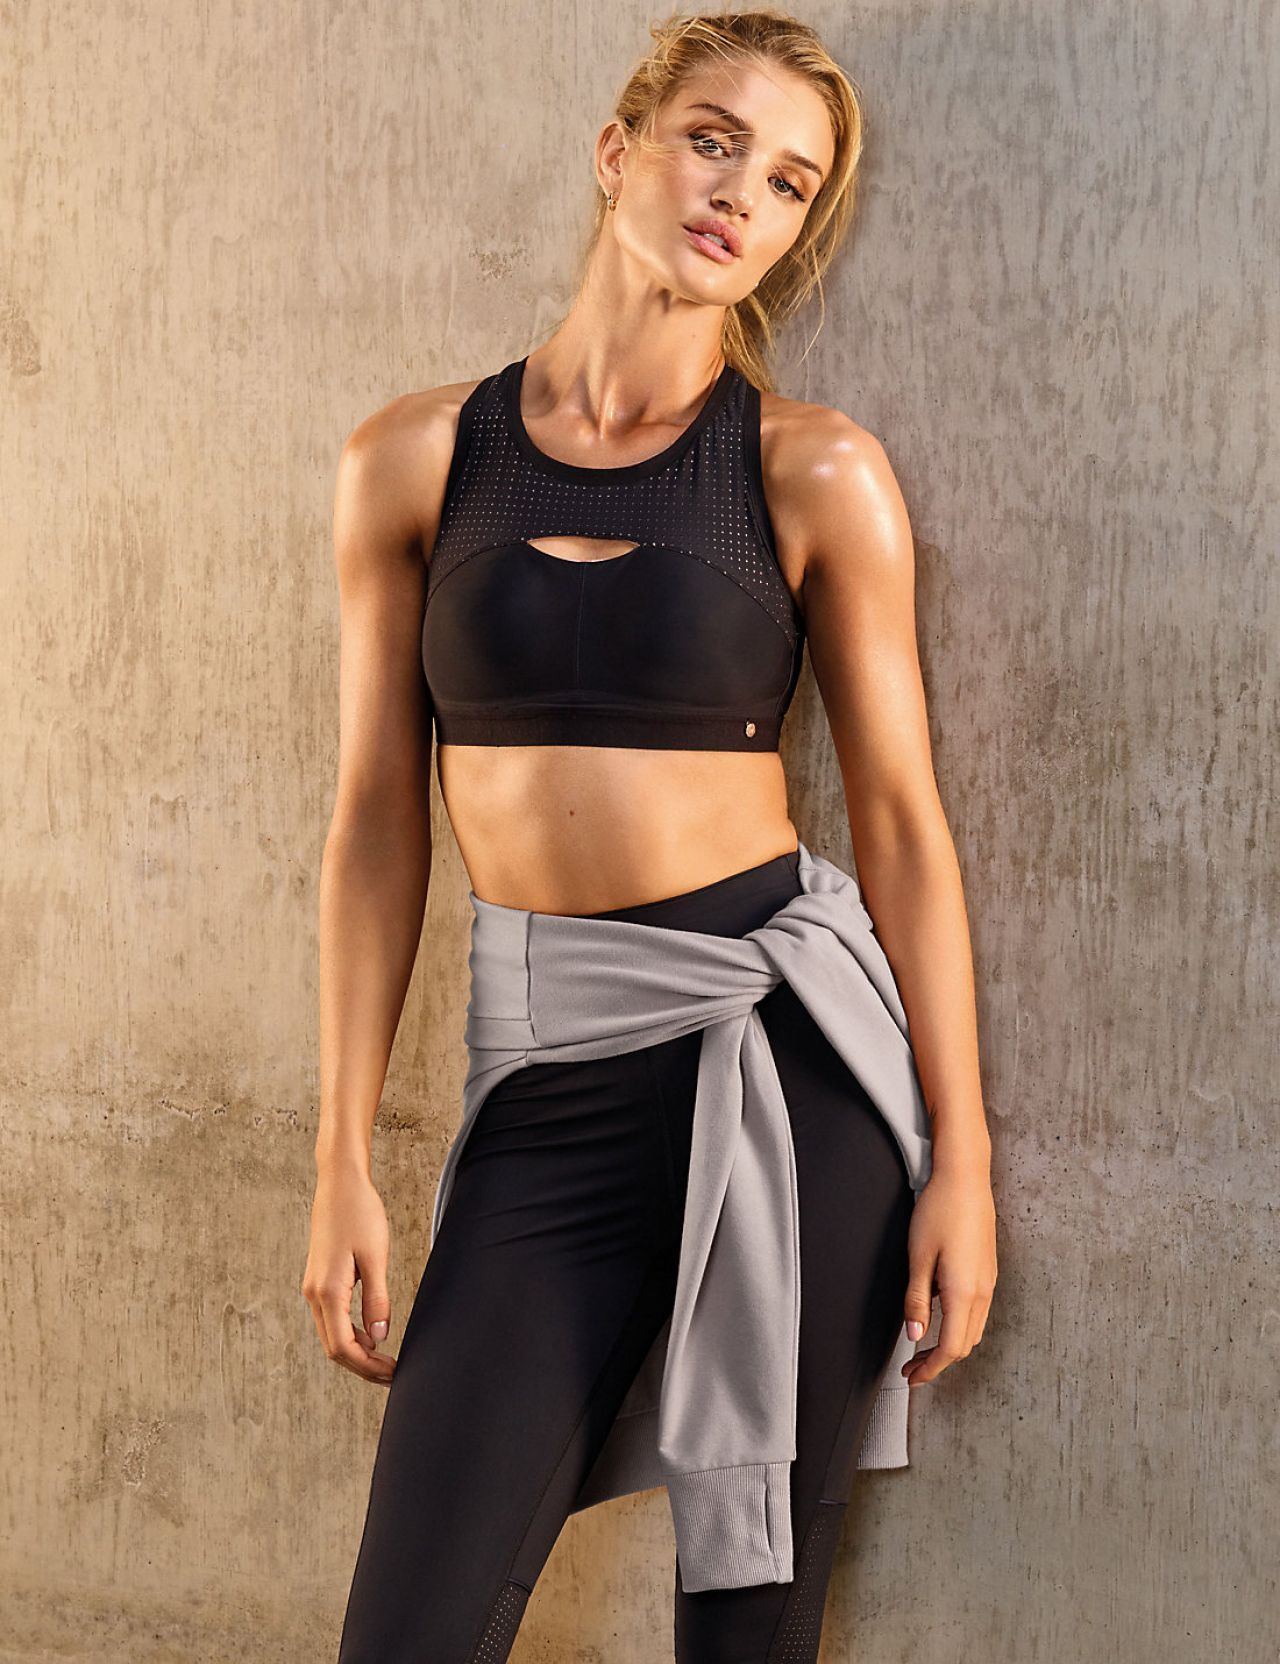 a8a602cb149 Rosie Huntington-Whiteley – Marks Spencer  Rosie for Autograph Sport   Photoshoot 2017